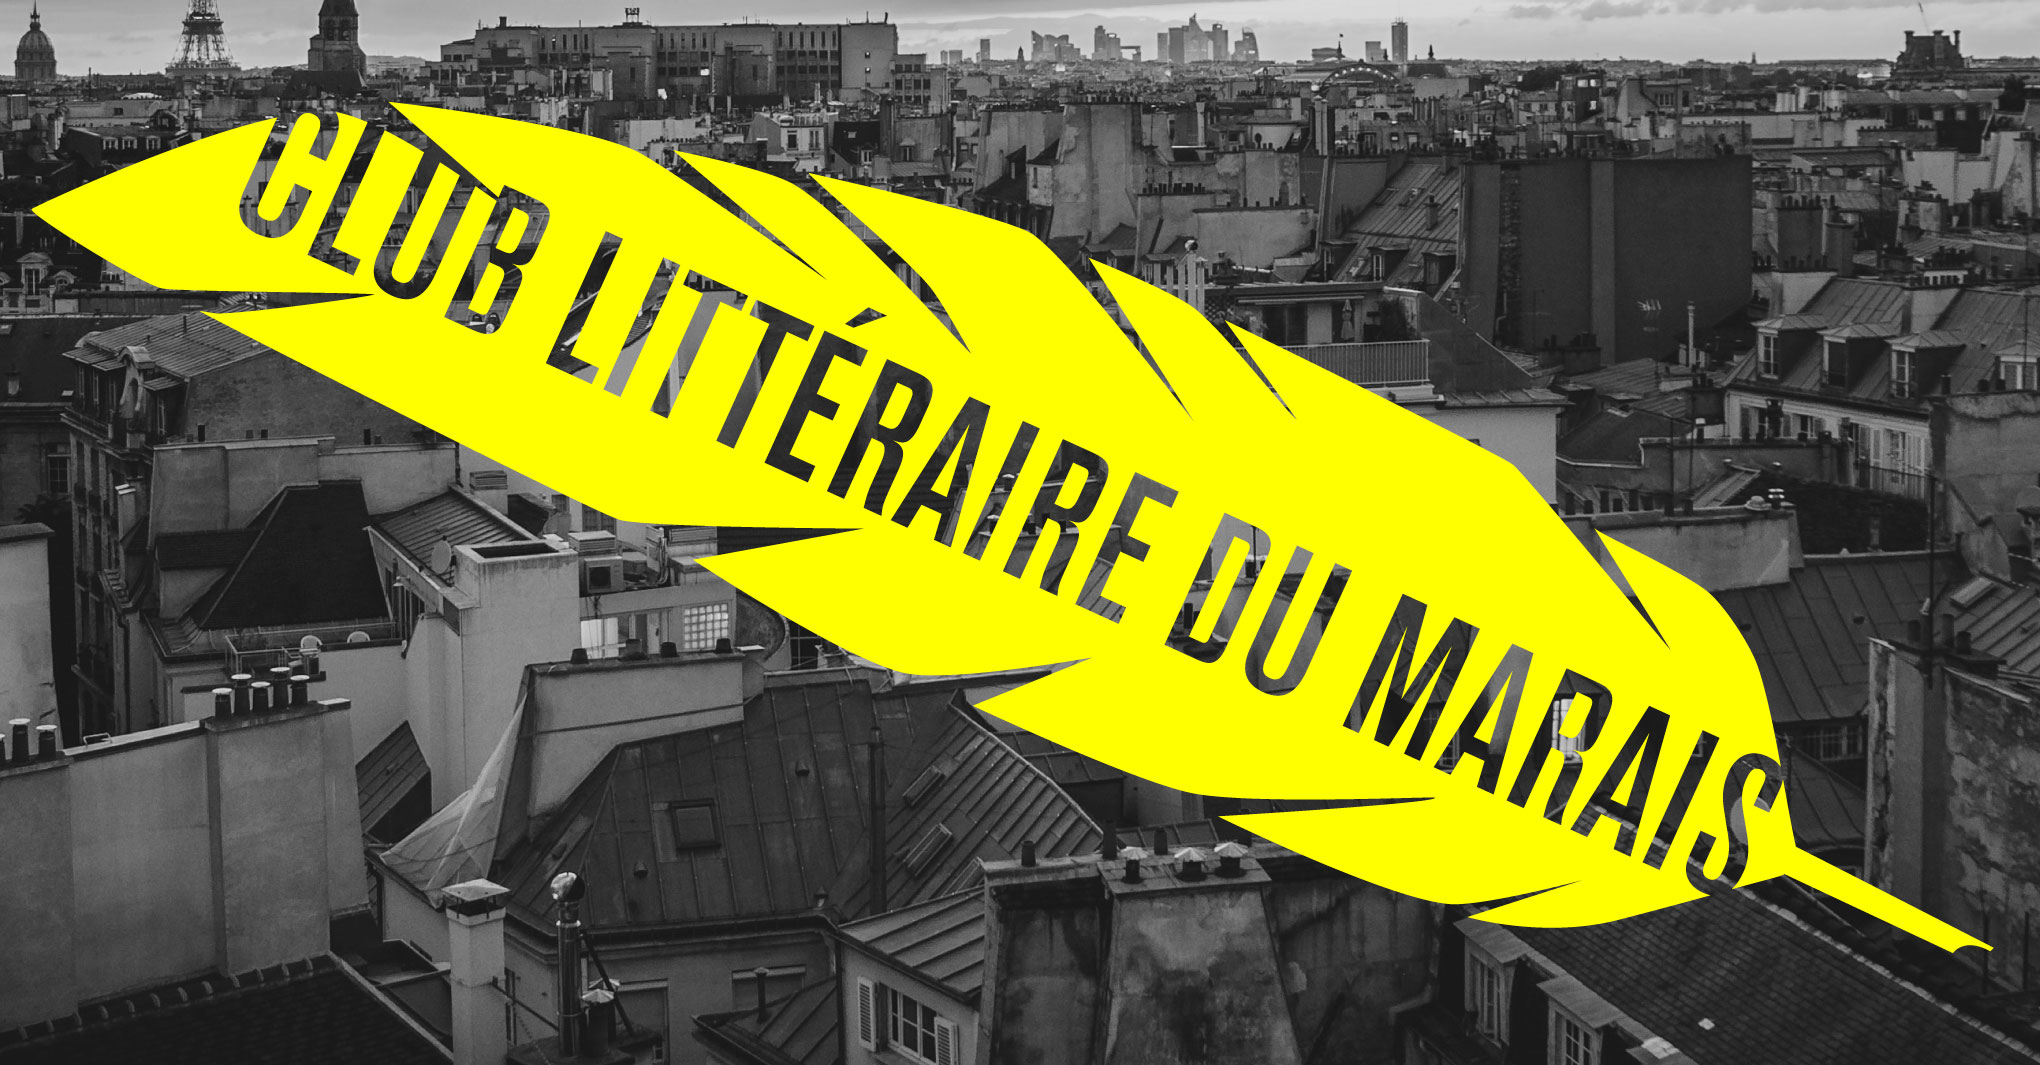 club-litteraire-facebook--BW.jpg